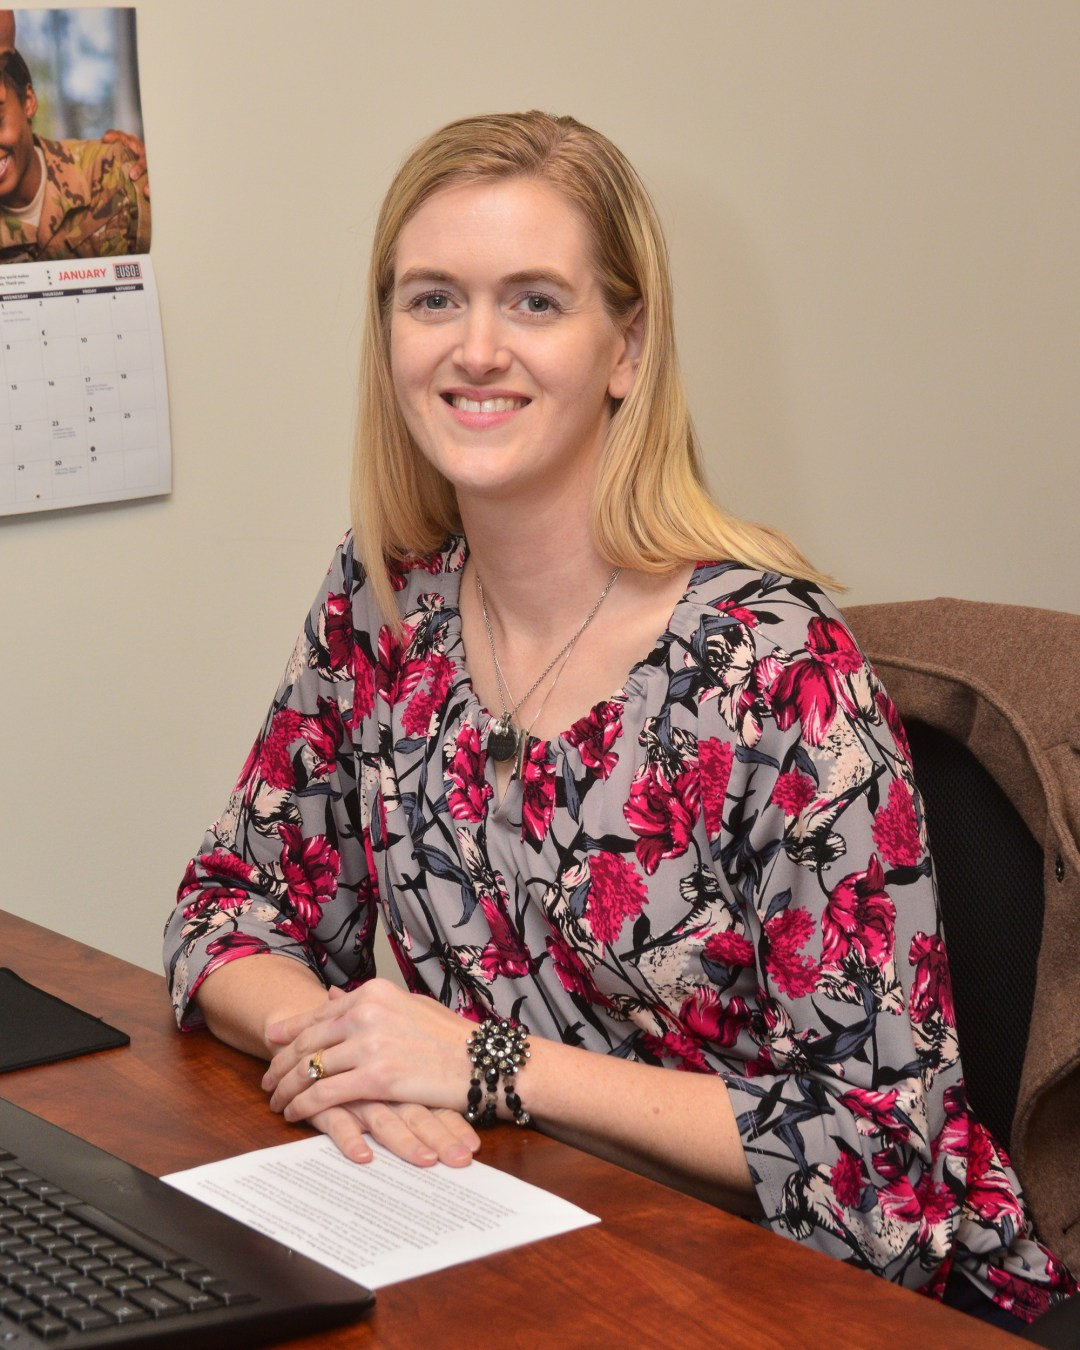 DR. BETHANY HAGER